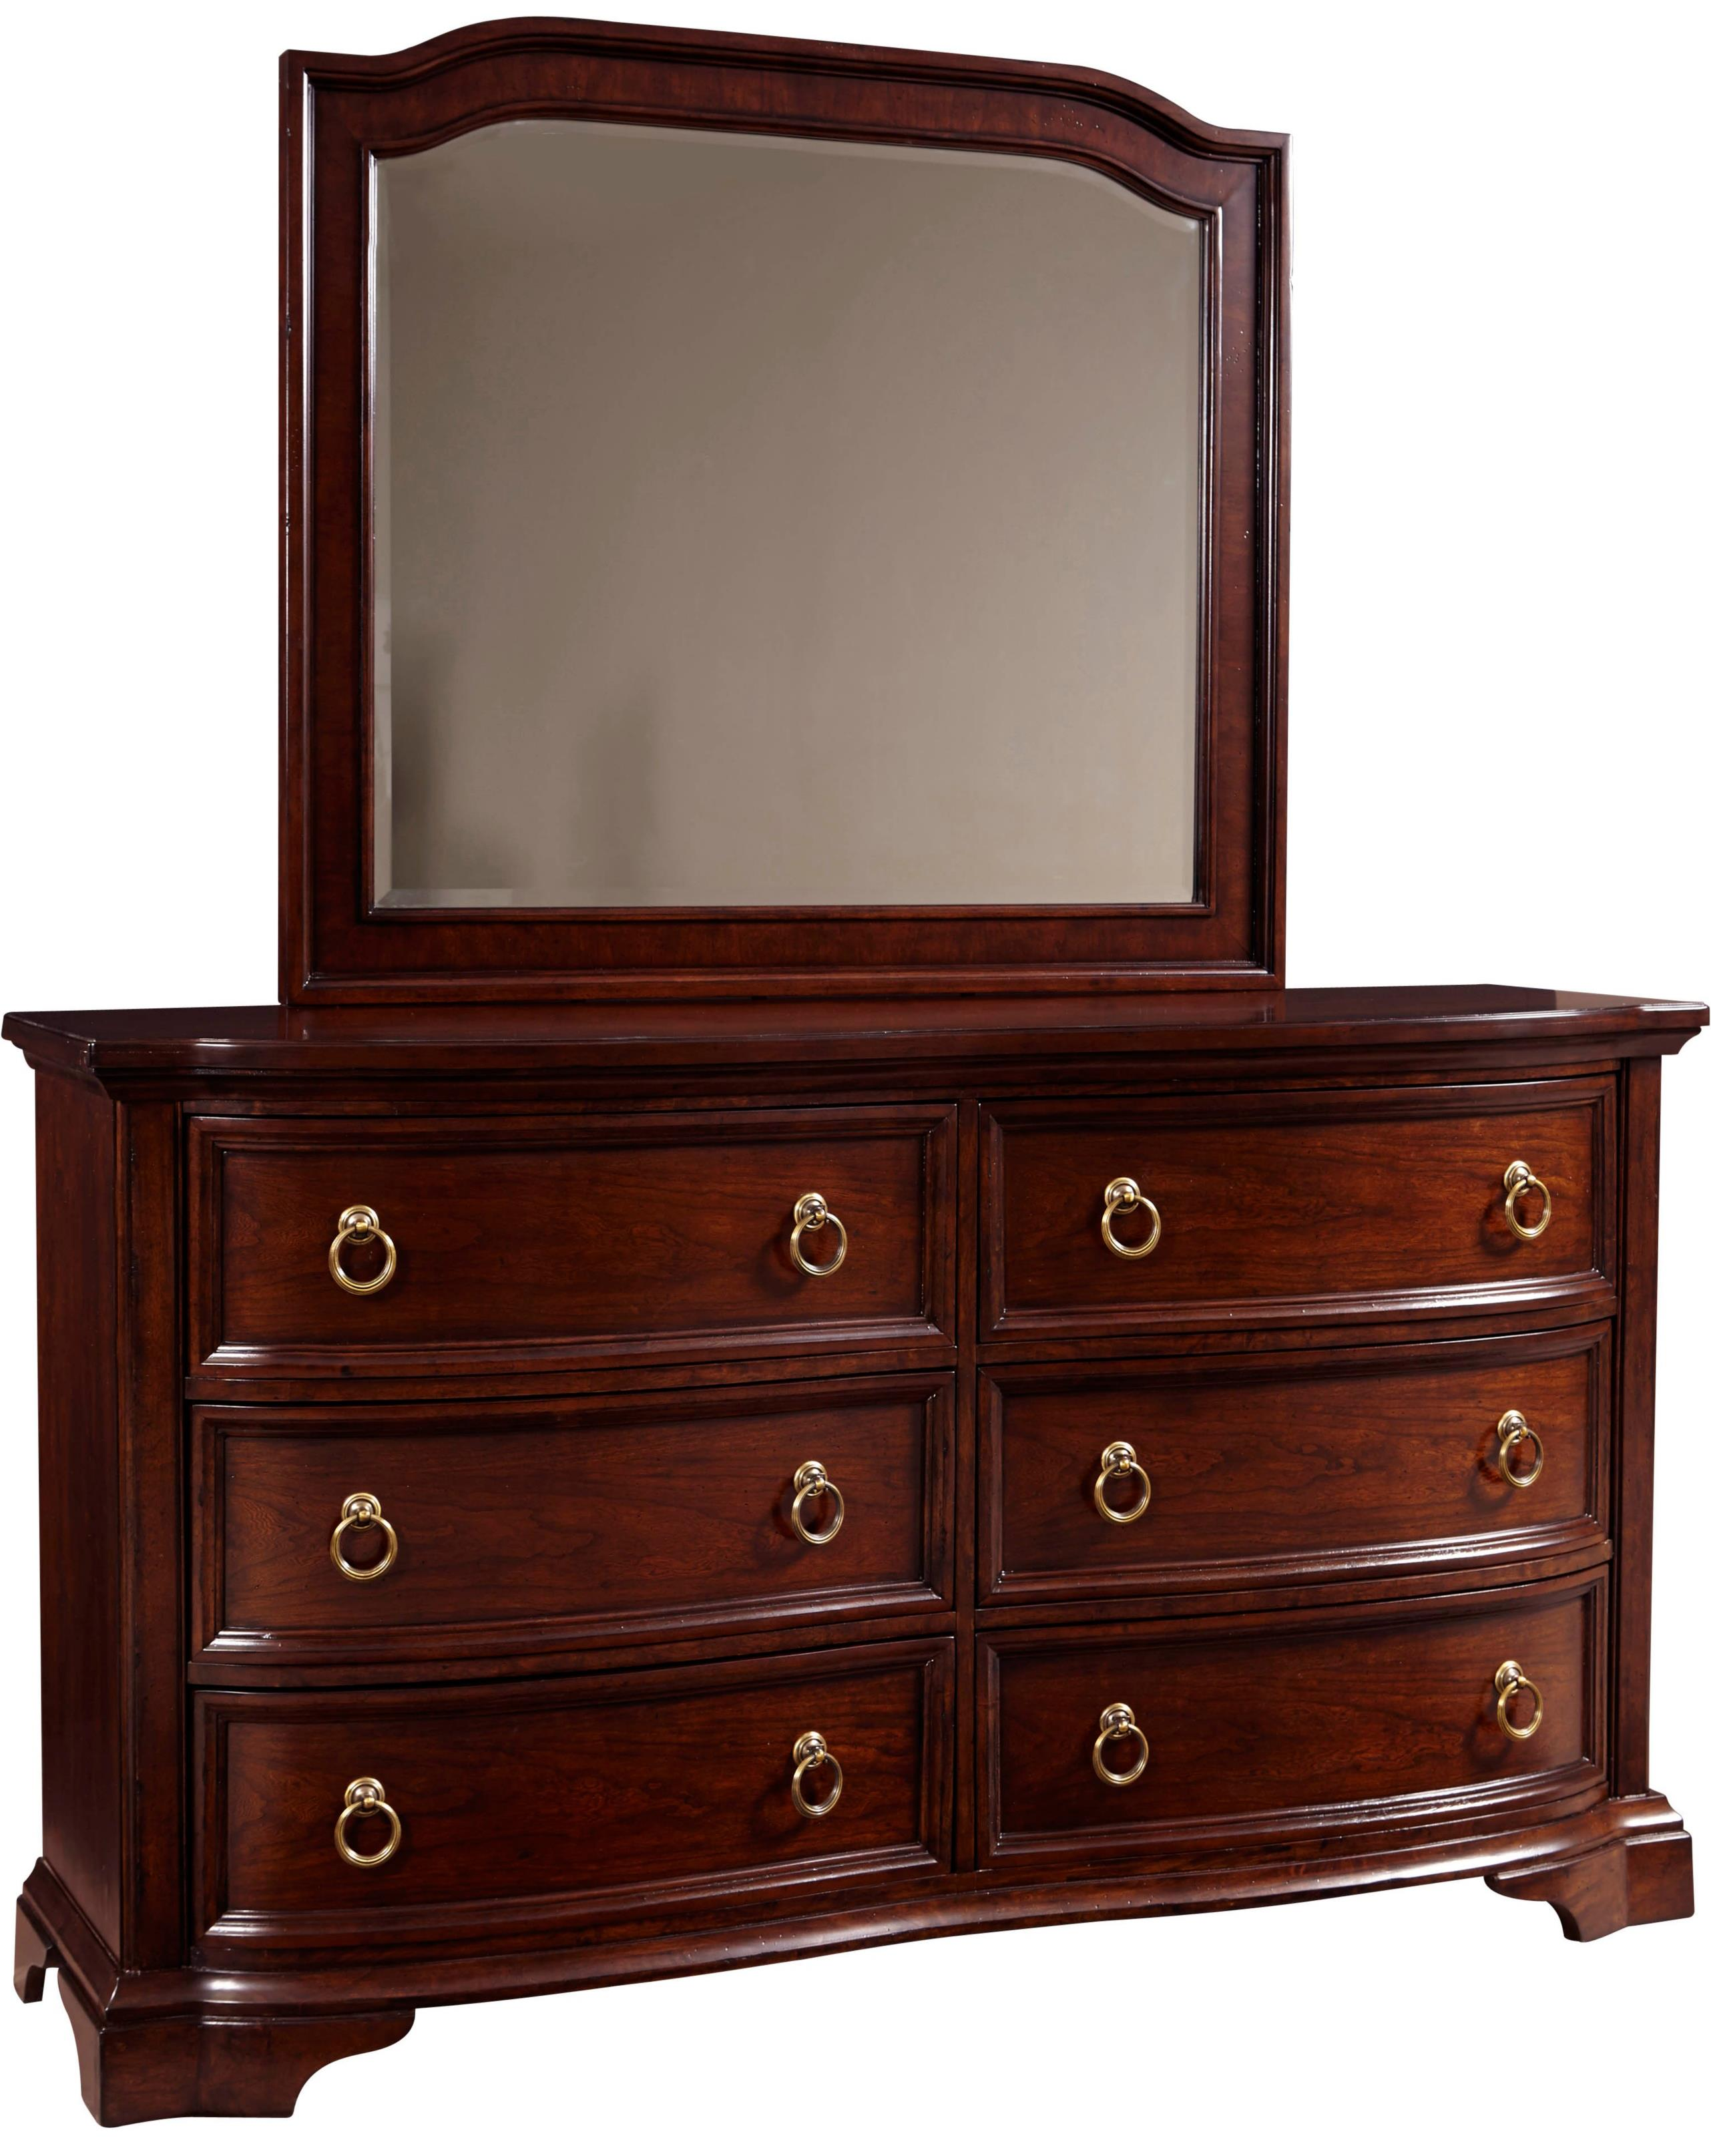 Broyhill dresser used broyhill dresser 3 most effective for Broyhill furniture